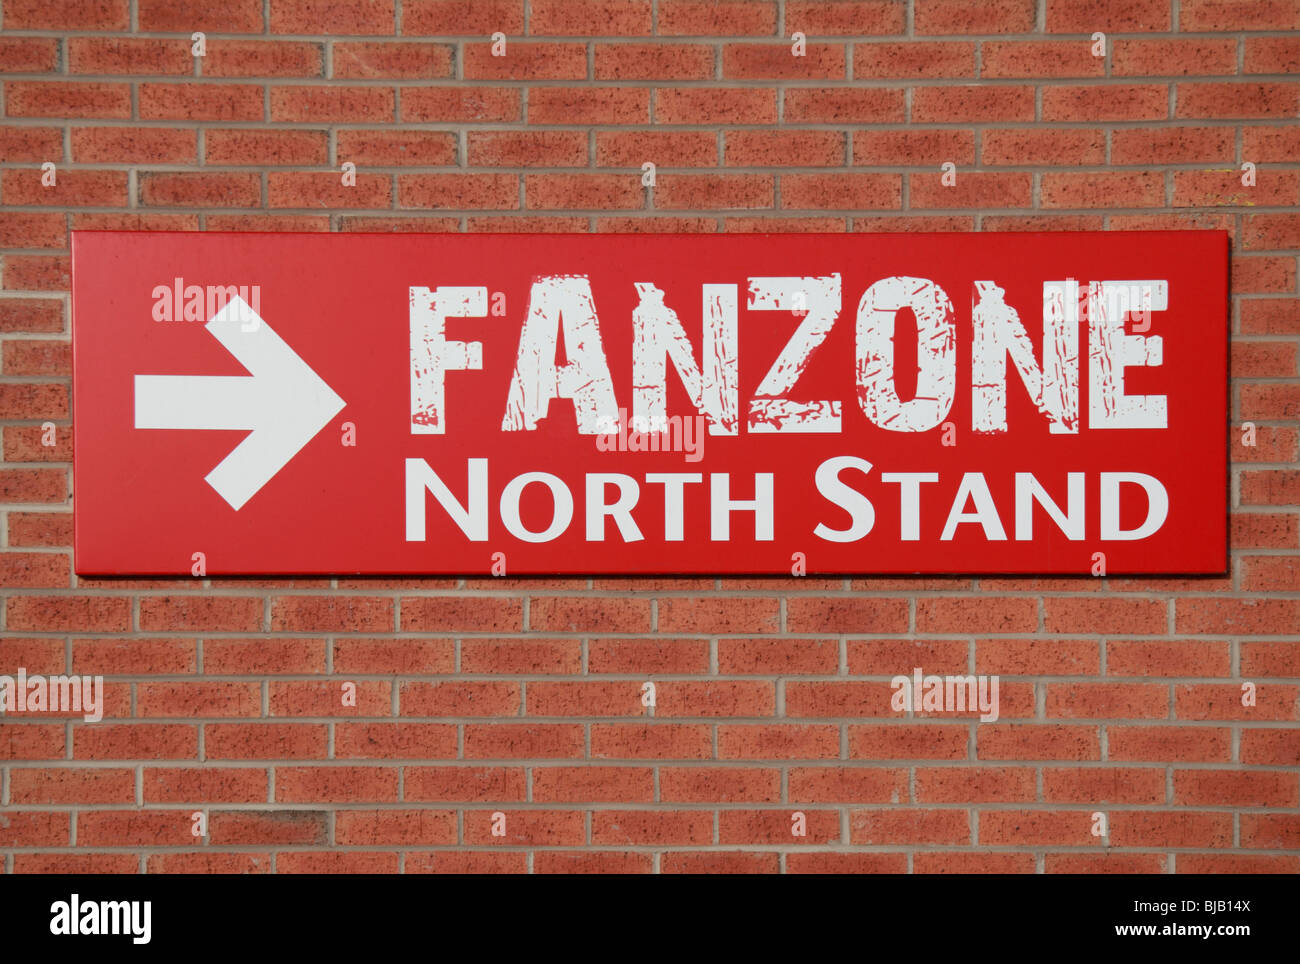 FanZone sign on the side of a Old Trafford football stadium, home ground of Manchester United. - Stock Image